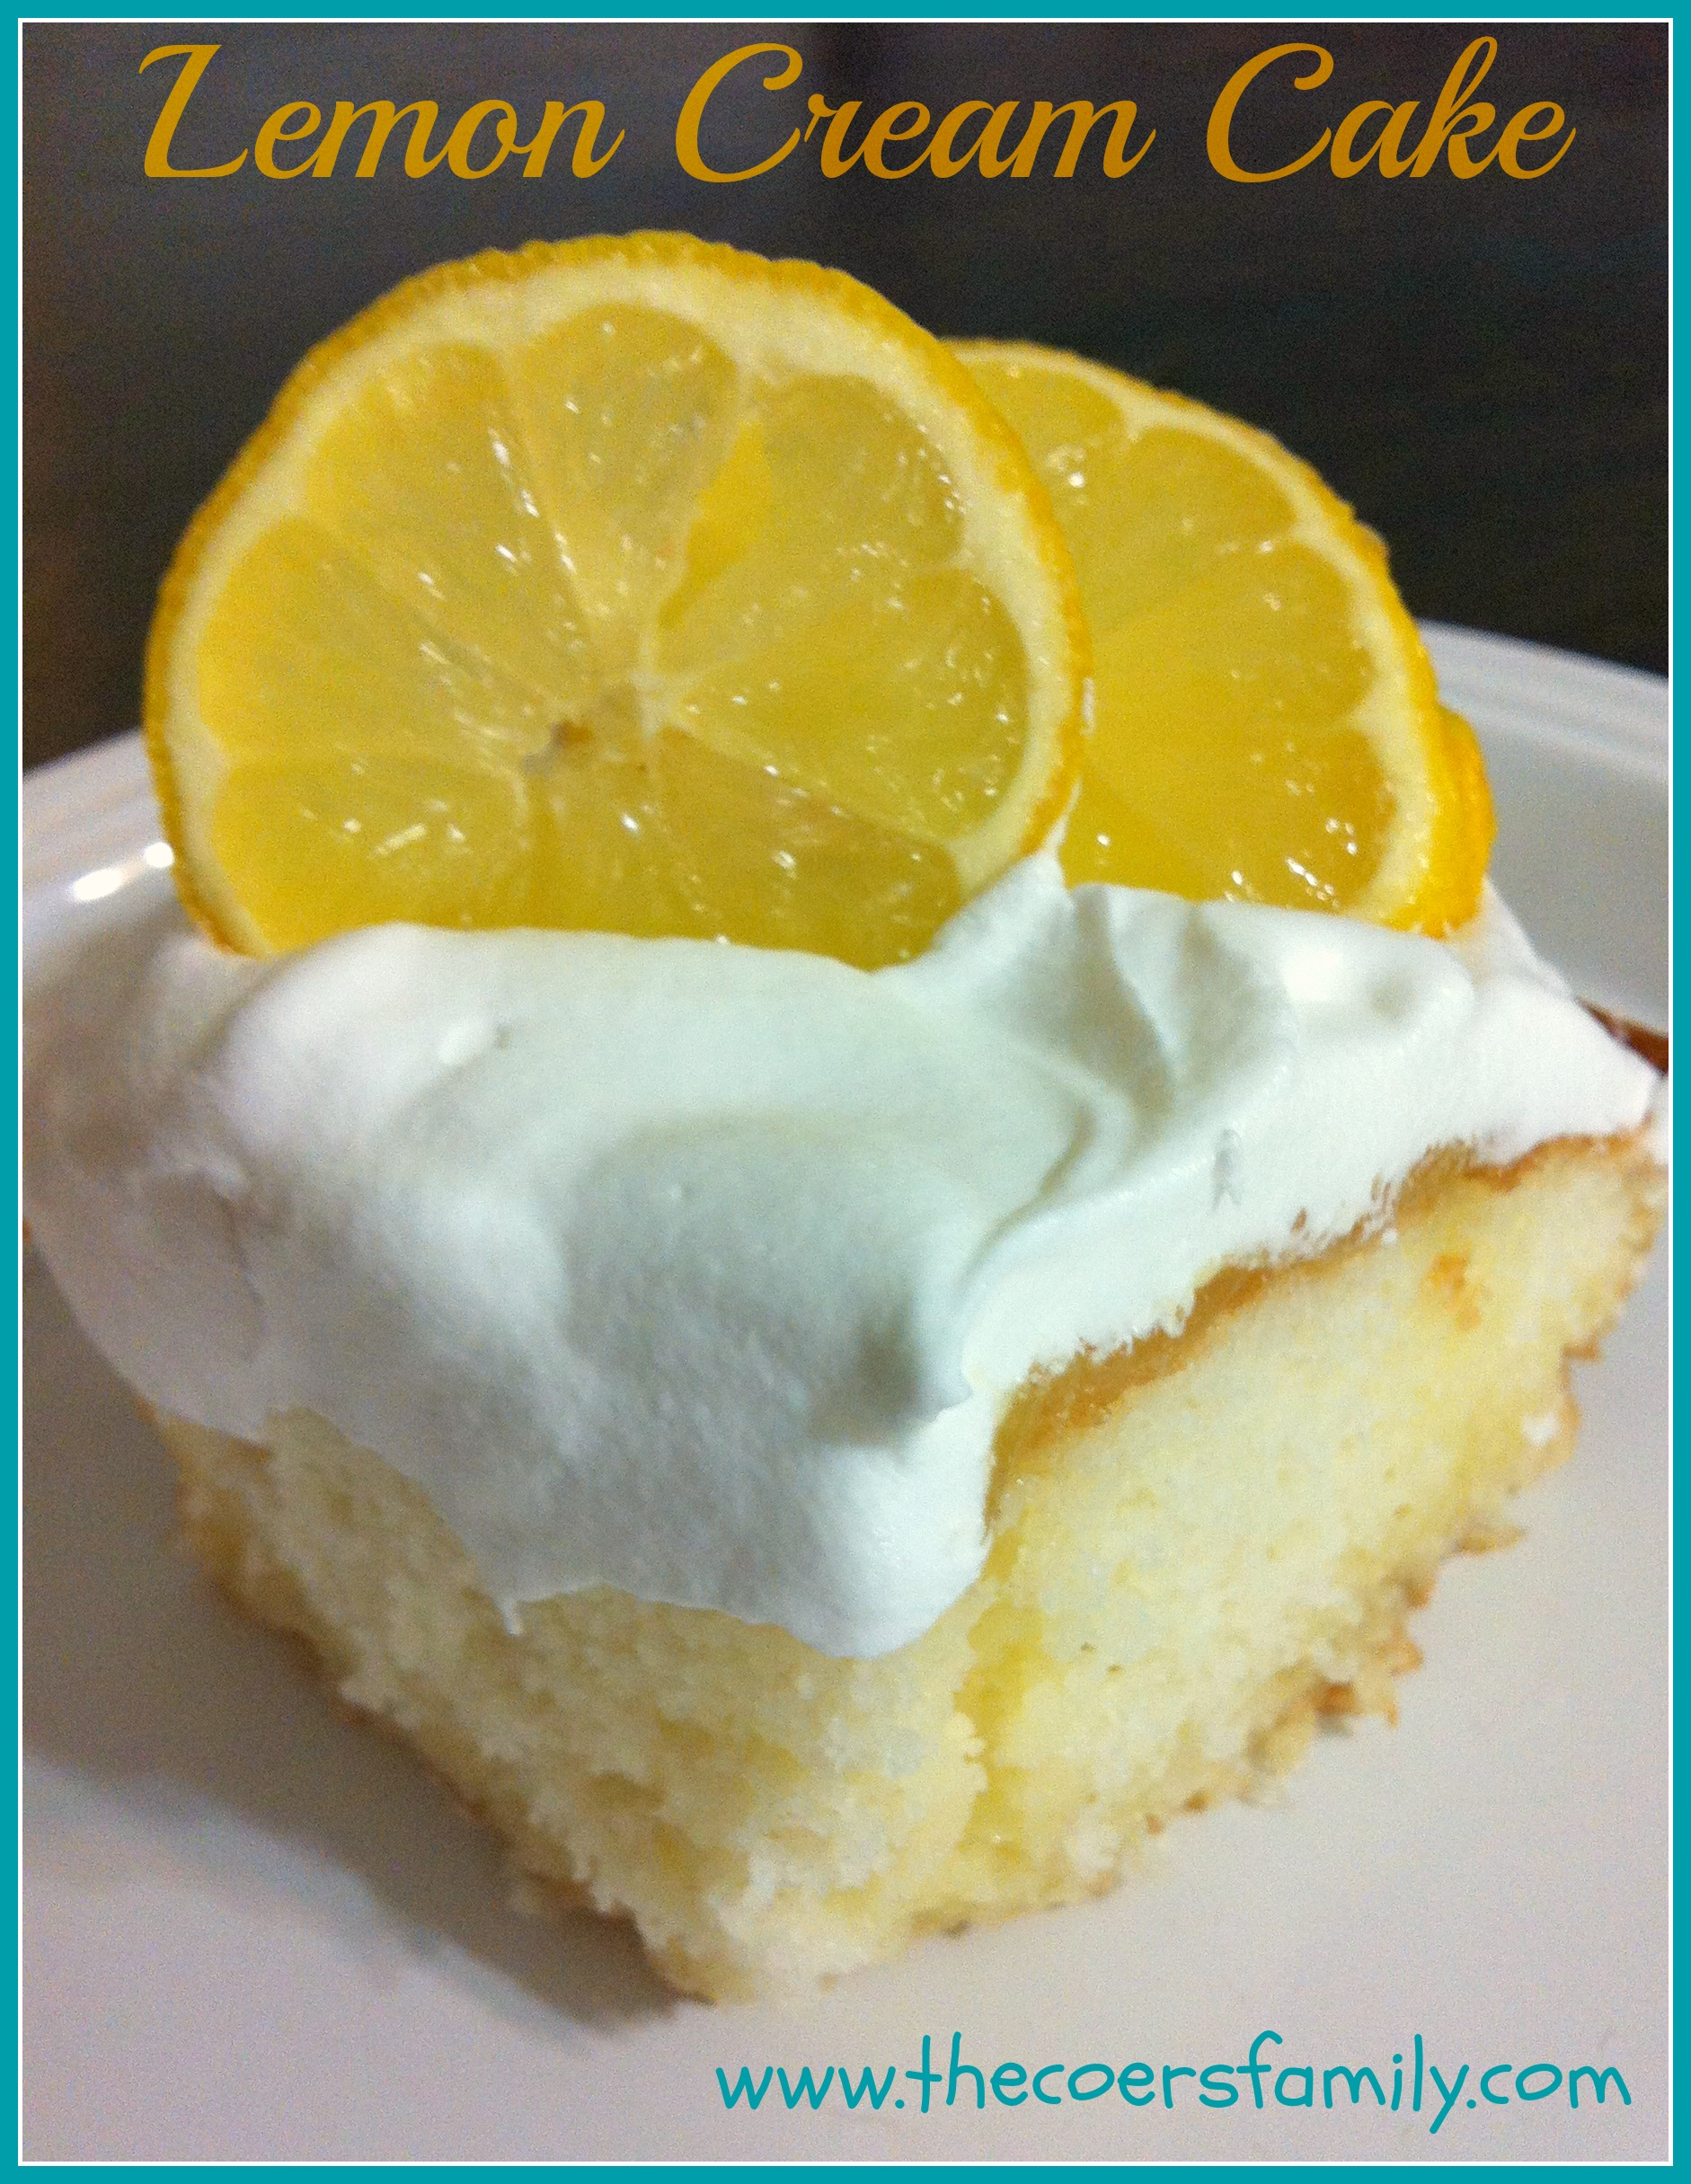 Lemon Cream Cake - The Coers Family